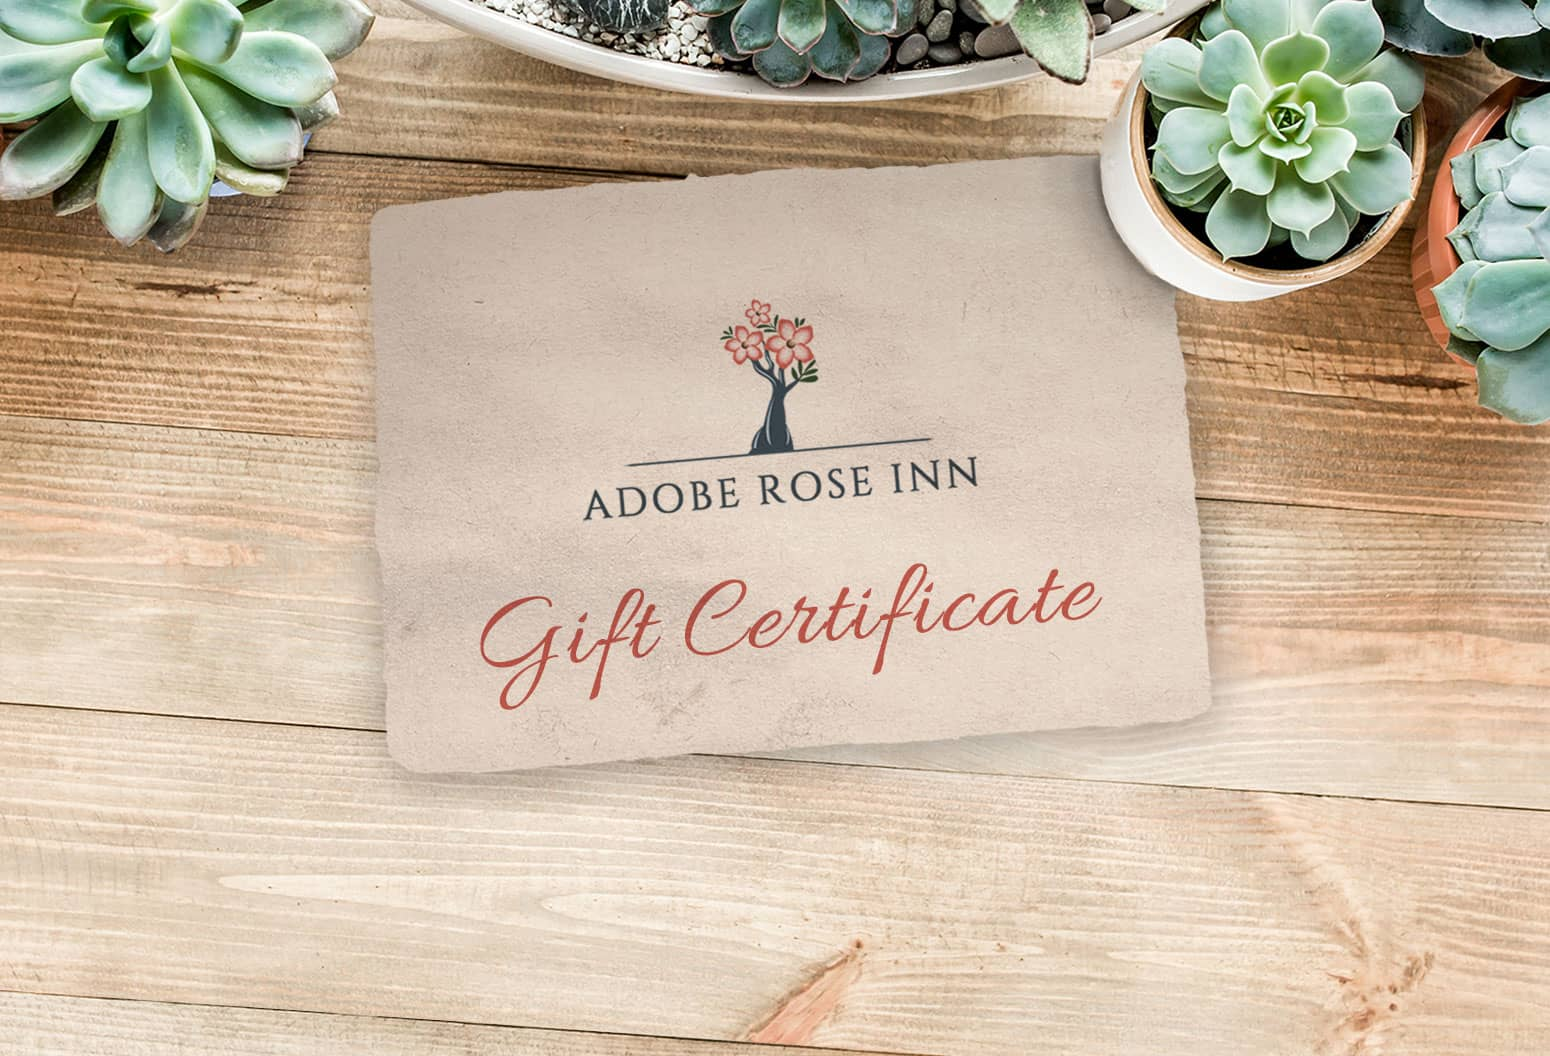 Adobe Rose Inn Gift Certificate